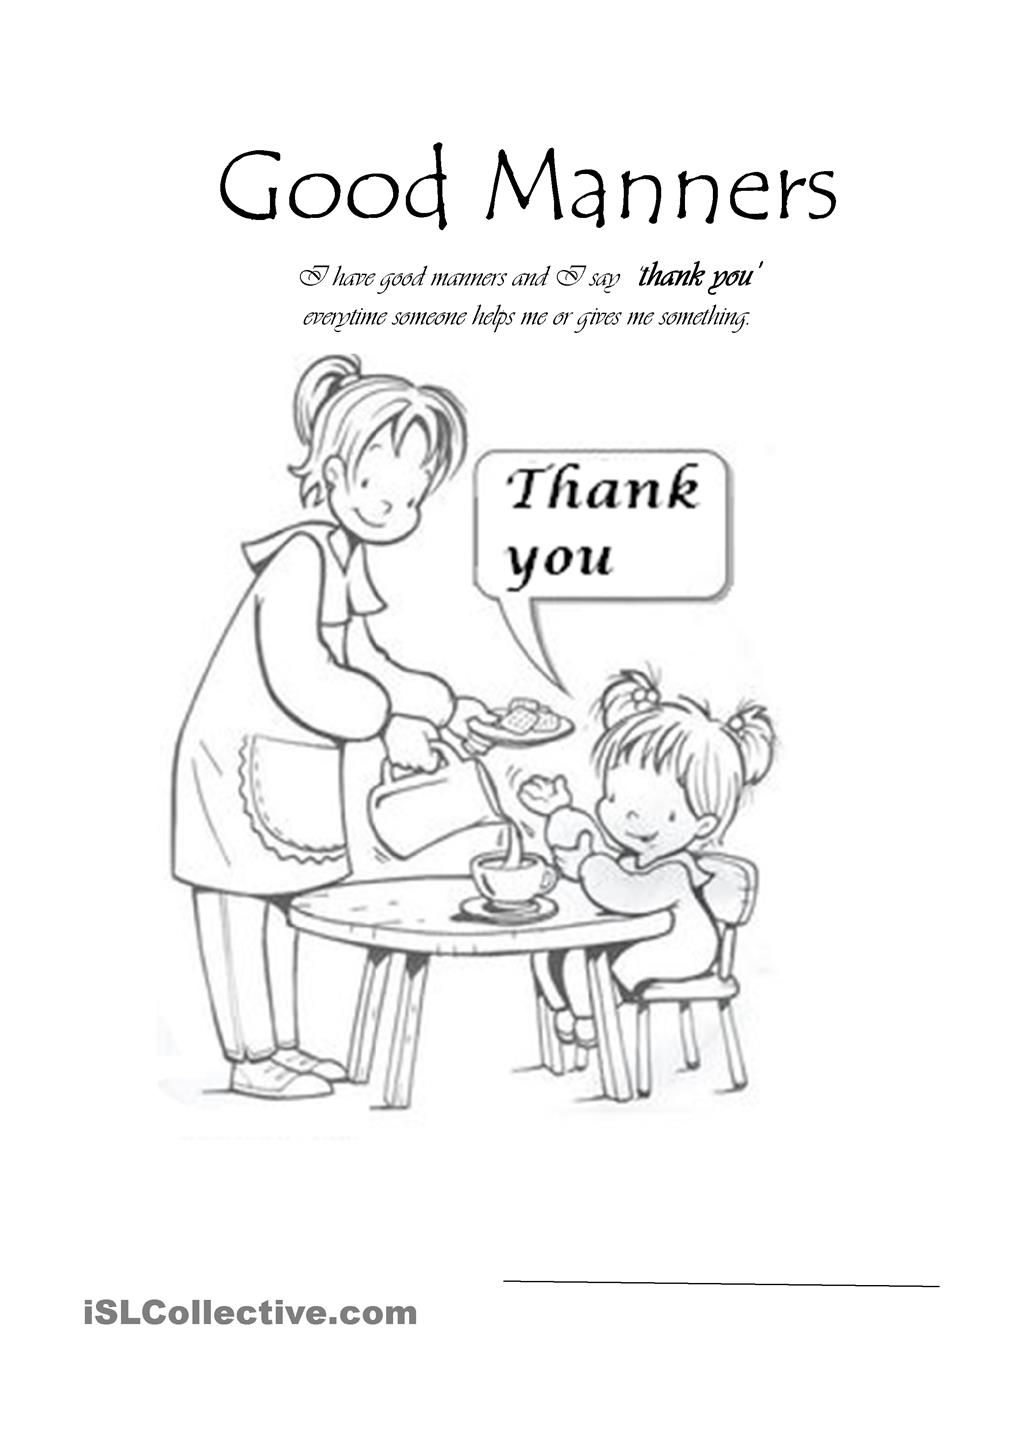 Worksheets Good Manners Worksheets good manners girls card pinterest worksheets and learning process